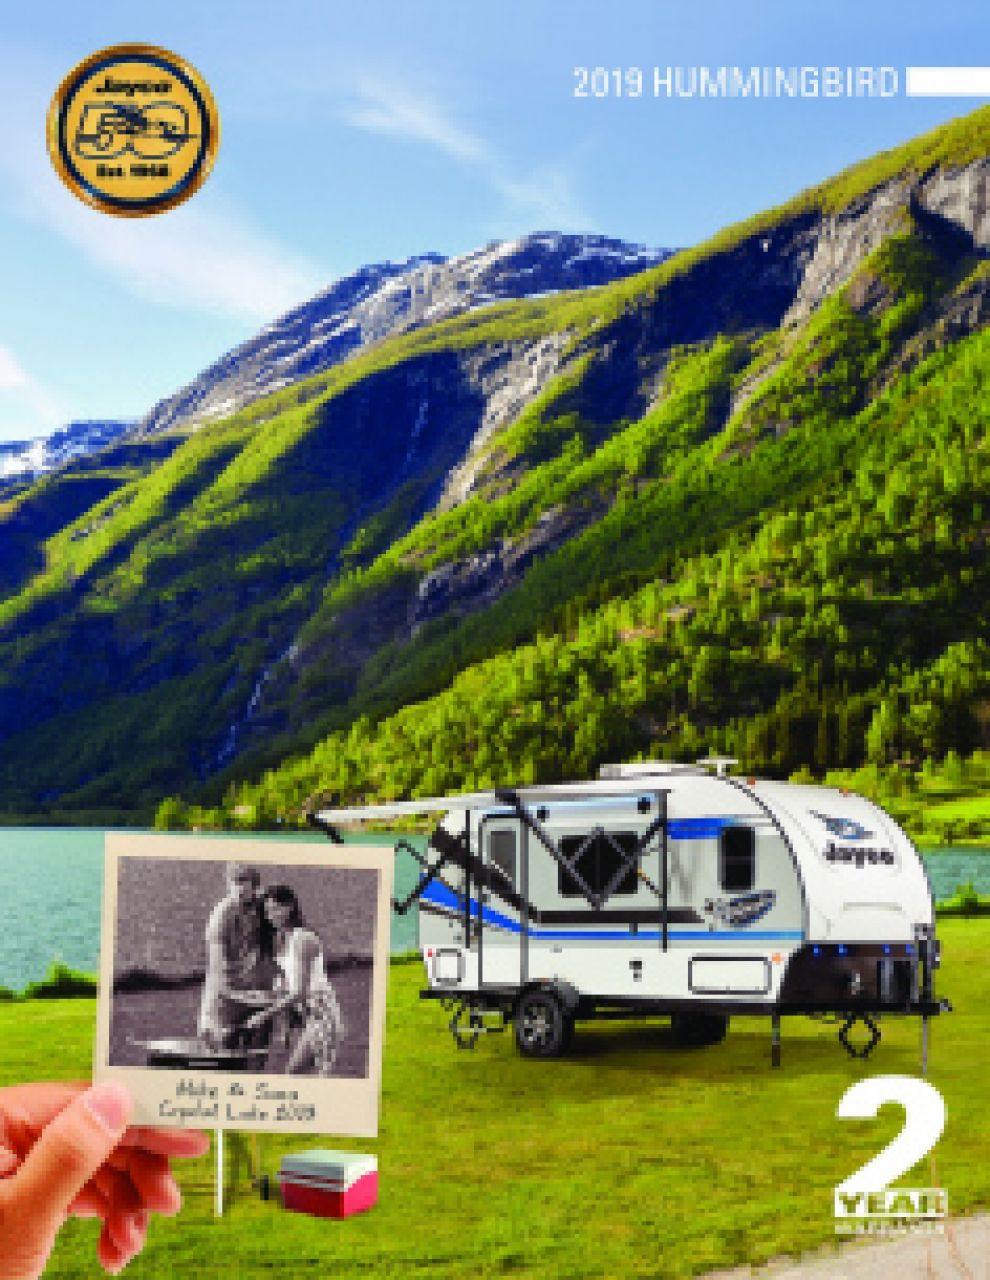 2019 Jayco Hummingbird RV Brochure Cover